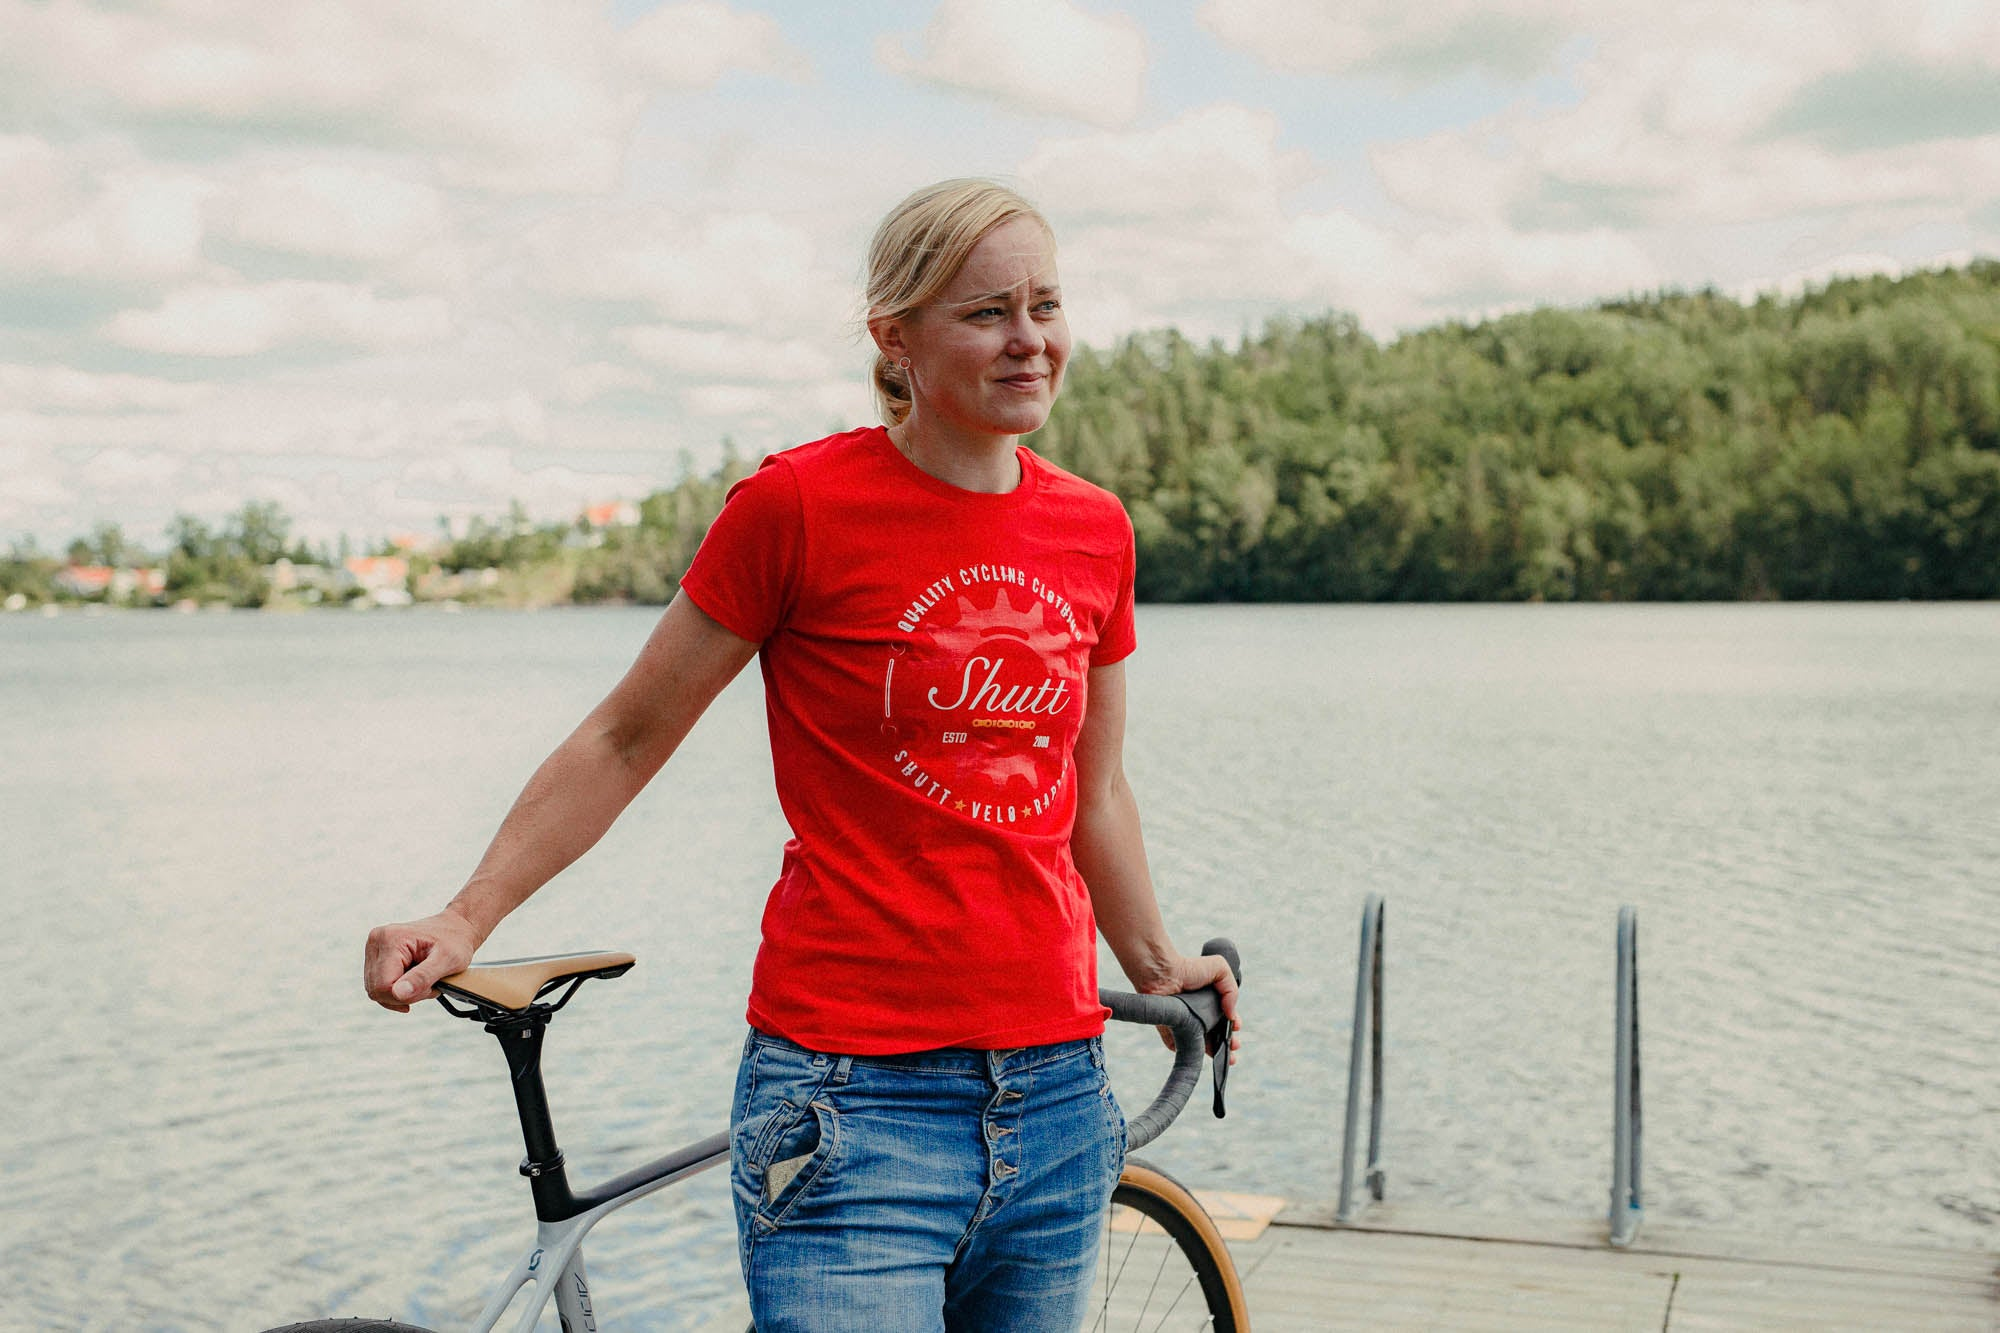 Women's Cycling T-shirts